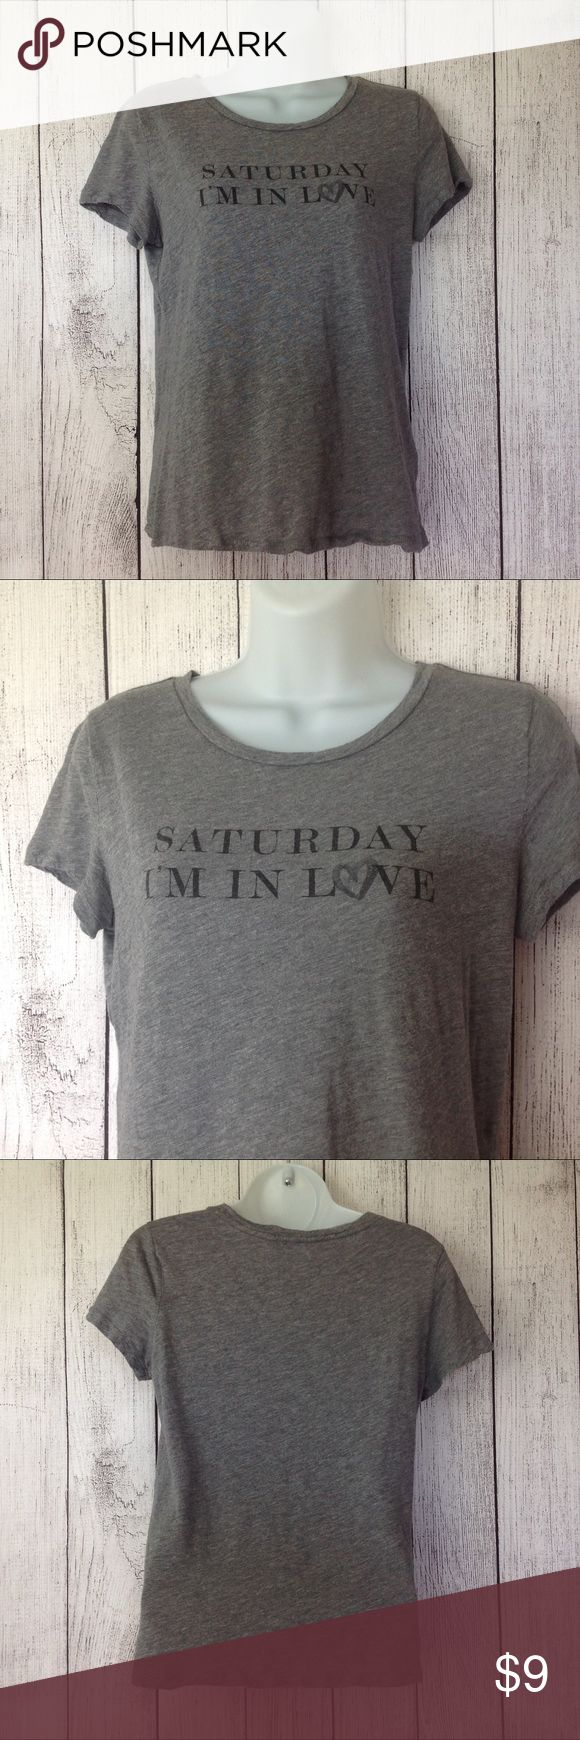 """Saturday Im In Love Tee Shirt Maker: Banana Republic ♥ Material: 60% Cotton 40% Modal ♥ Color: Gray ♥ Measured Size: Pit to pit- 18"""" Pit to cuff- n.a Shoulder to waist- 22""""  ♥ Tag Size:  XS ♥ PLEASE CHECK YOUR ACTUAL MEASUREMENTS TO MAKE SURE IT IS THE RIGHT SIZE! THANKS!  ♥ Condition: Great Used Condition  ♥ Item #: (office use only) B  Follow us for coupon codes!  INSTAGRAM-thehausofvintage1984 Twitter- @hov1984 Facebook- Intergalactic Haus of Vintage 1984 Banana Republic Tops Tees - Short…"""